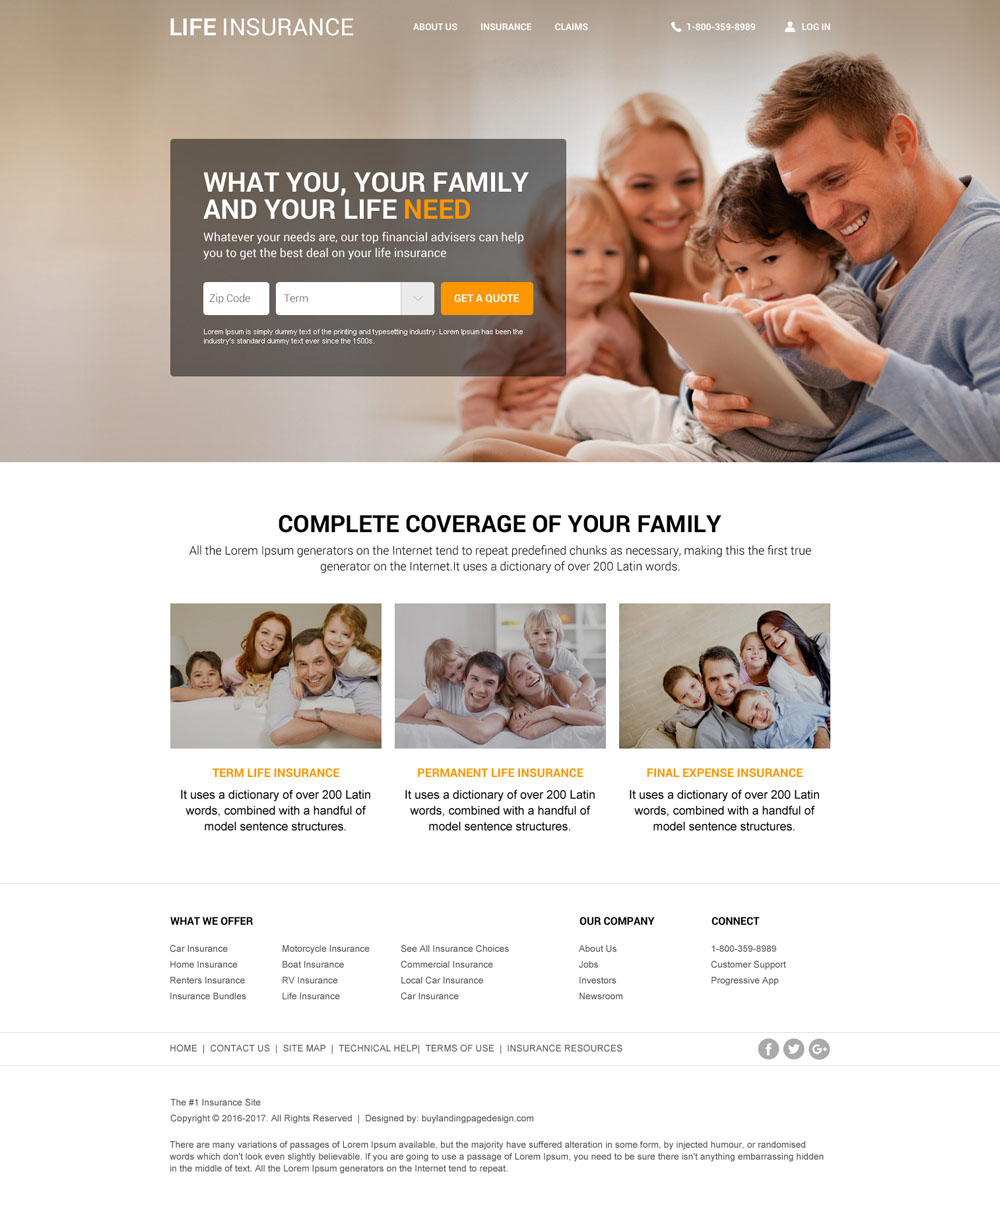 life-insurance-agency-website-template-to-create-beautiful-agency-website-001-index